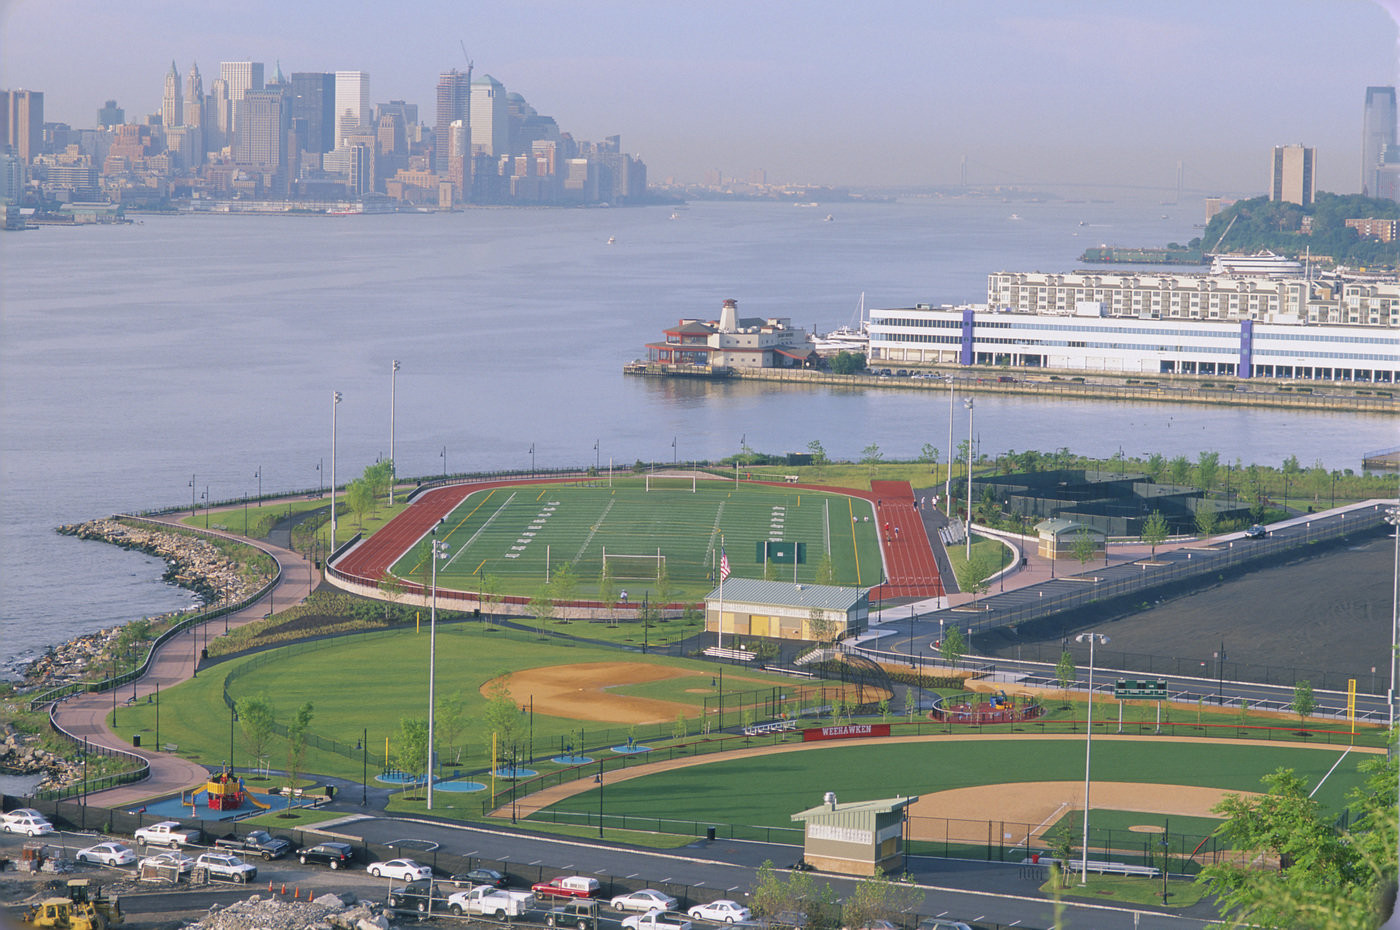 Weehawken Recreation Field